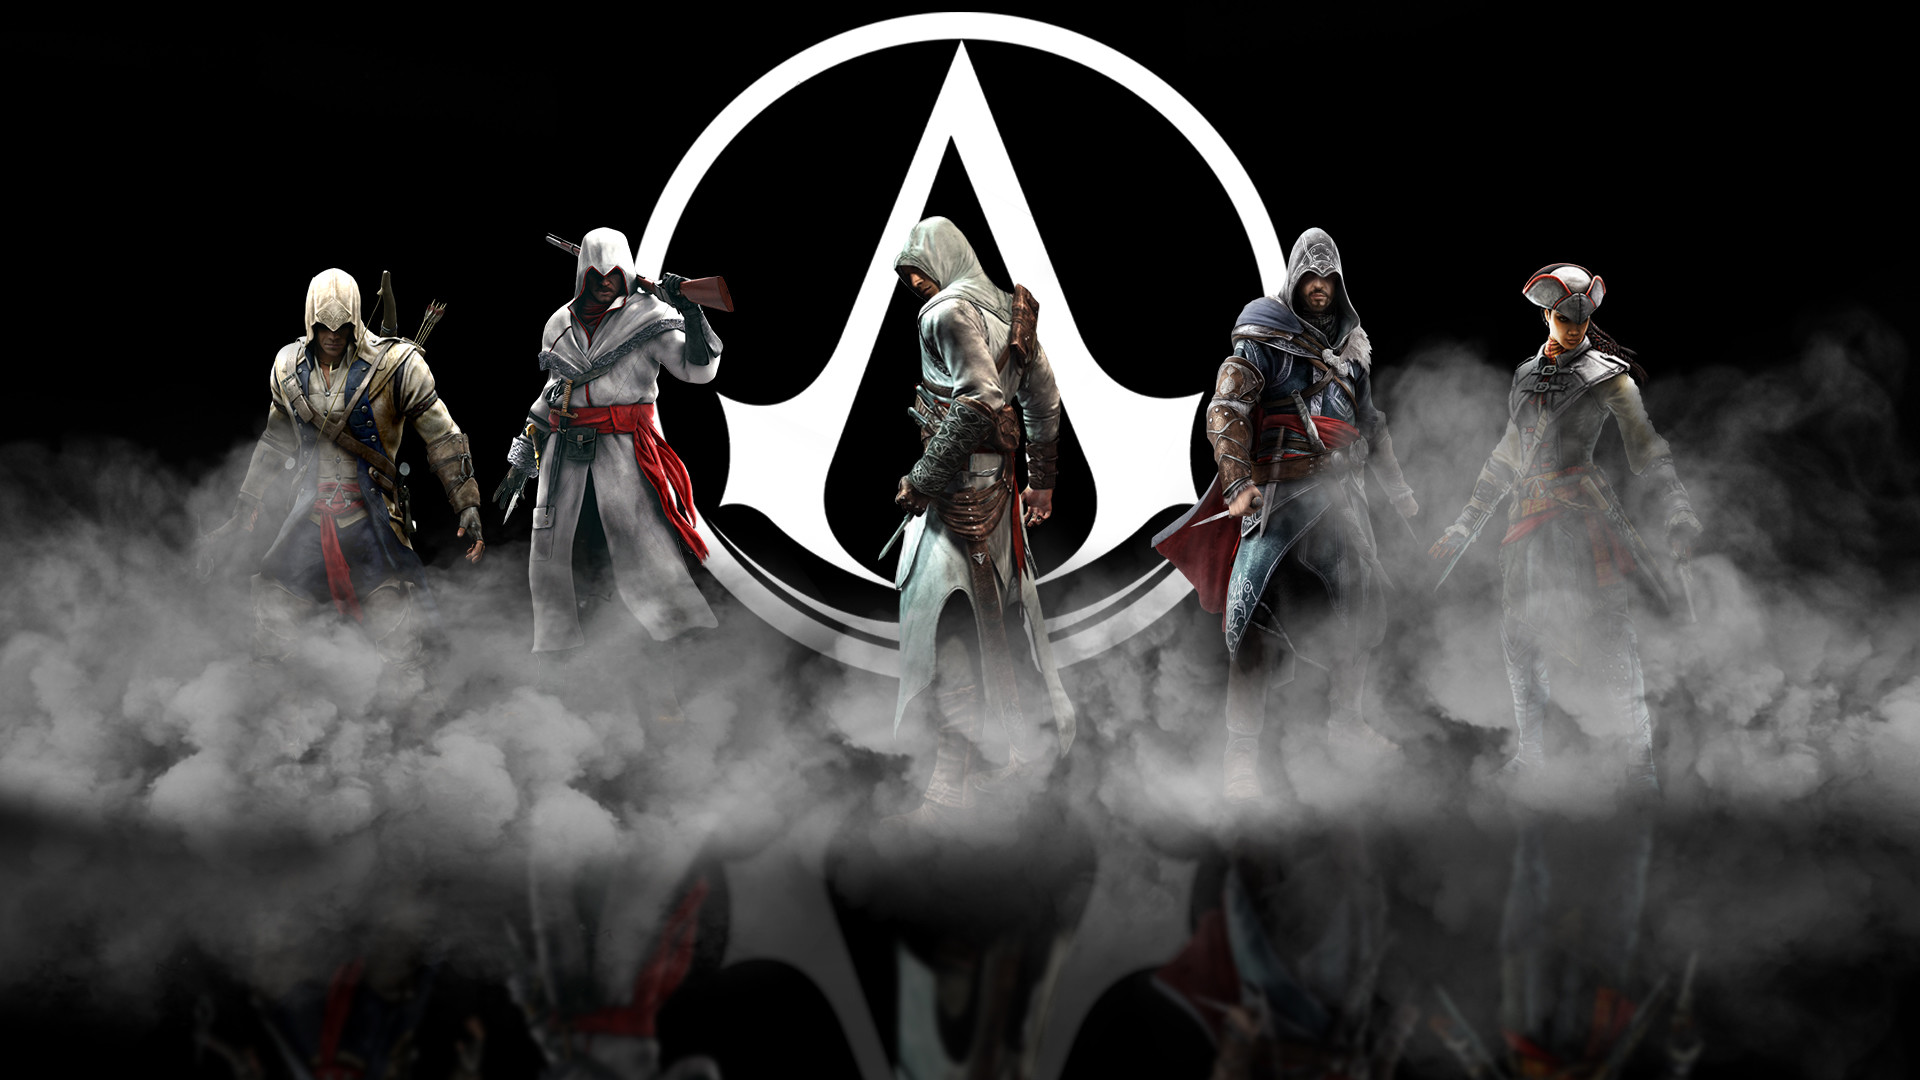 1920x1080 assassin's creed 4 wallpaper hd - Google keresés